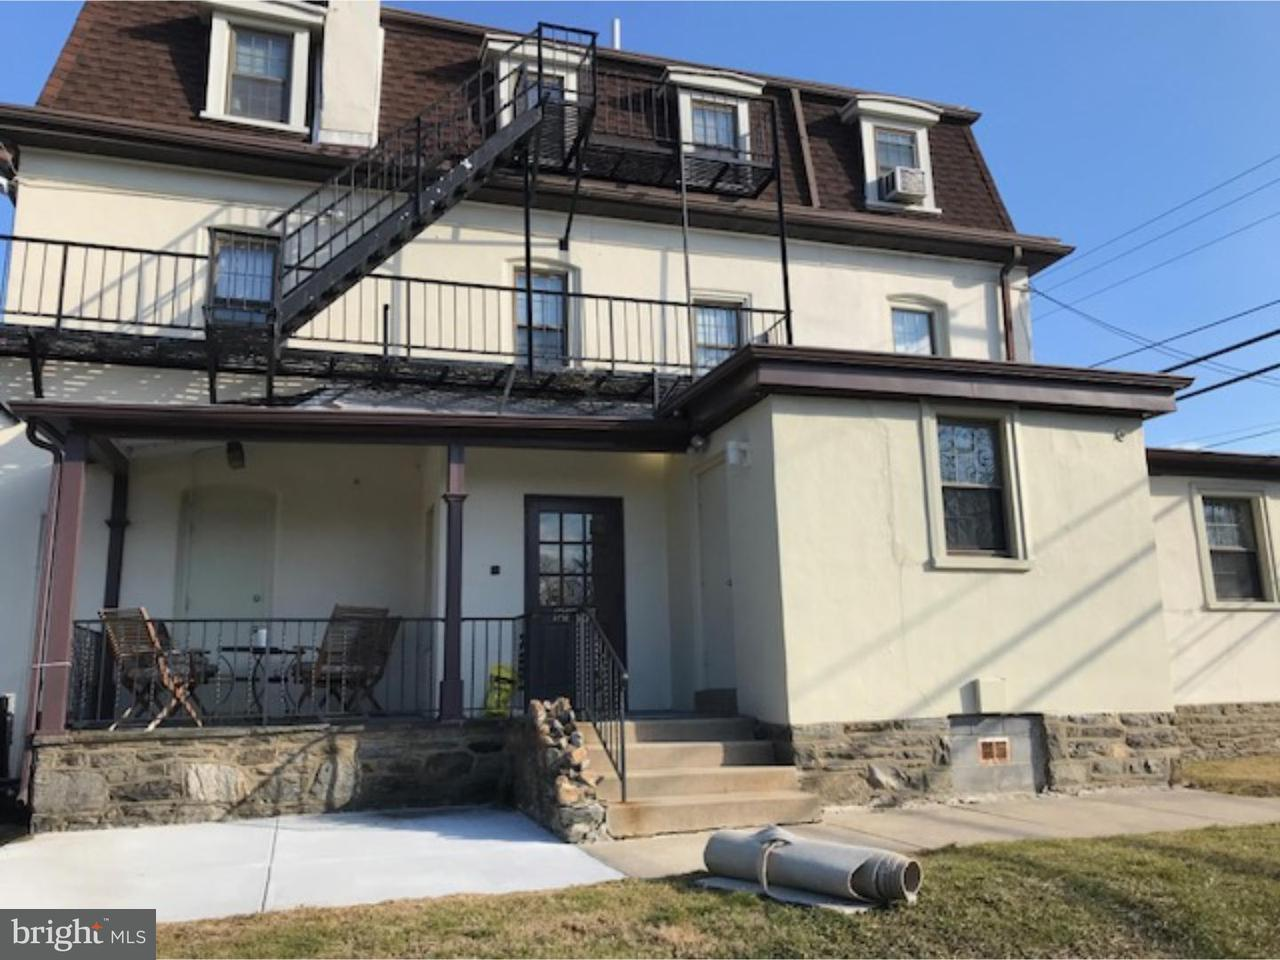 1717 W Chester Havertown, PA 19083